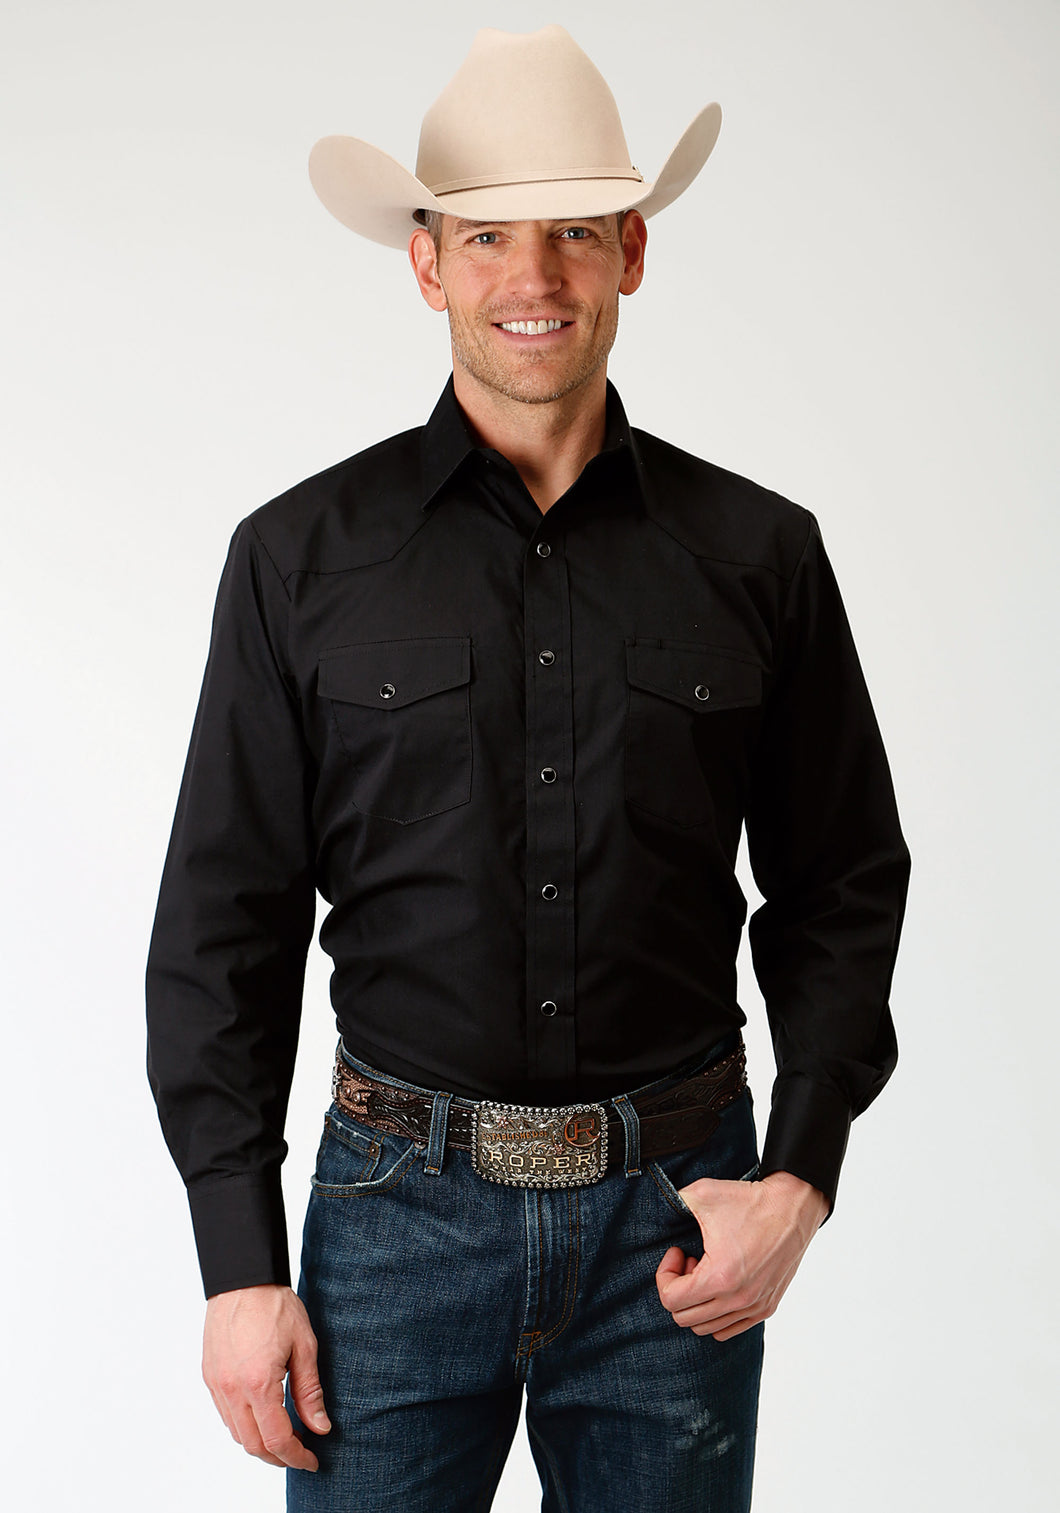 Karman Classics- 5545 Solid Polyc Mens Long Sleeve Shirt 1221 Solid Broadcloth - Black